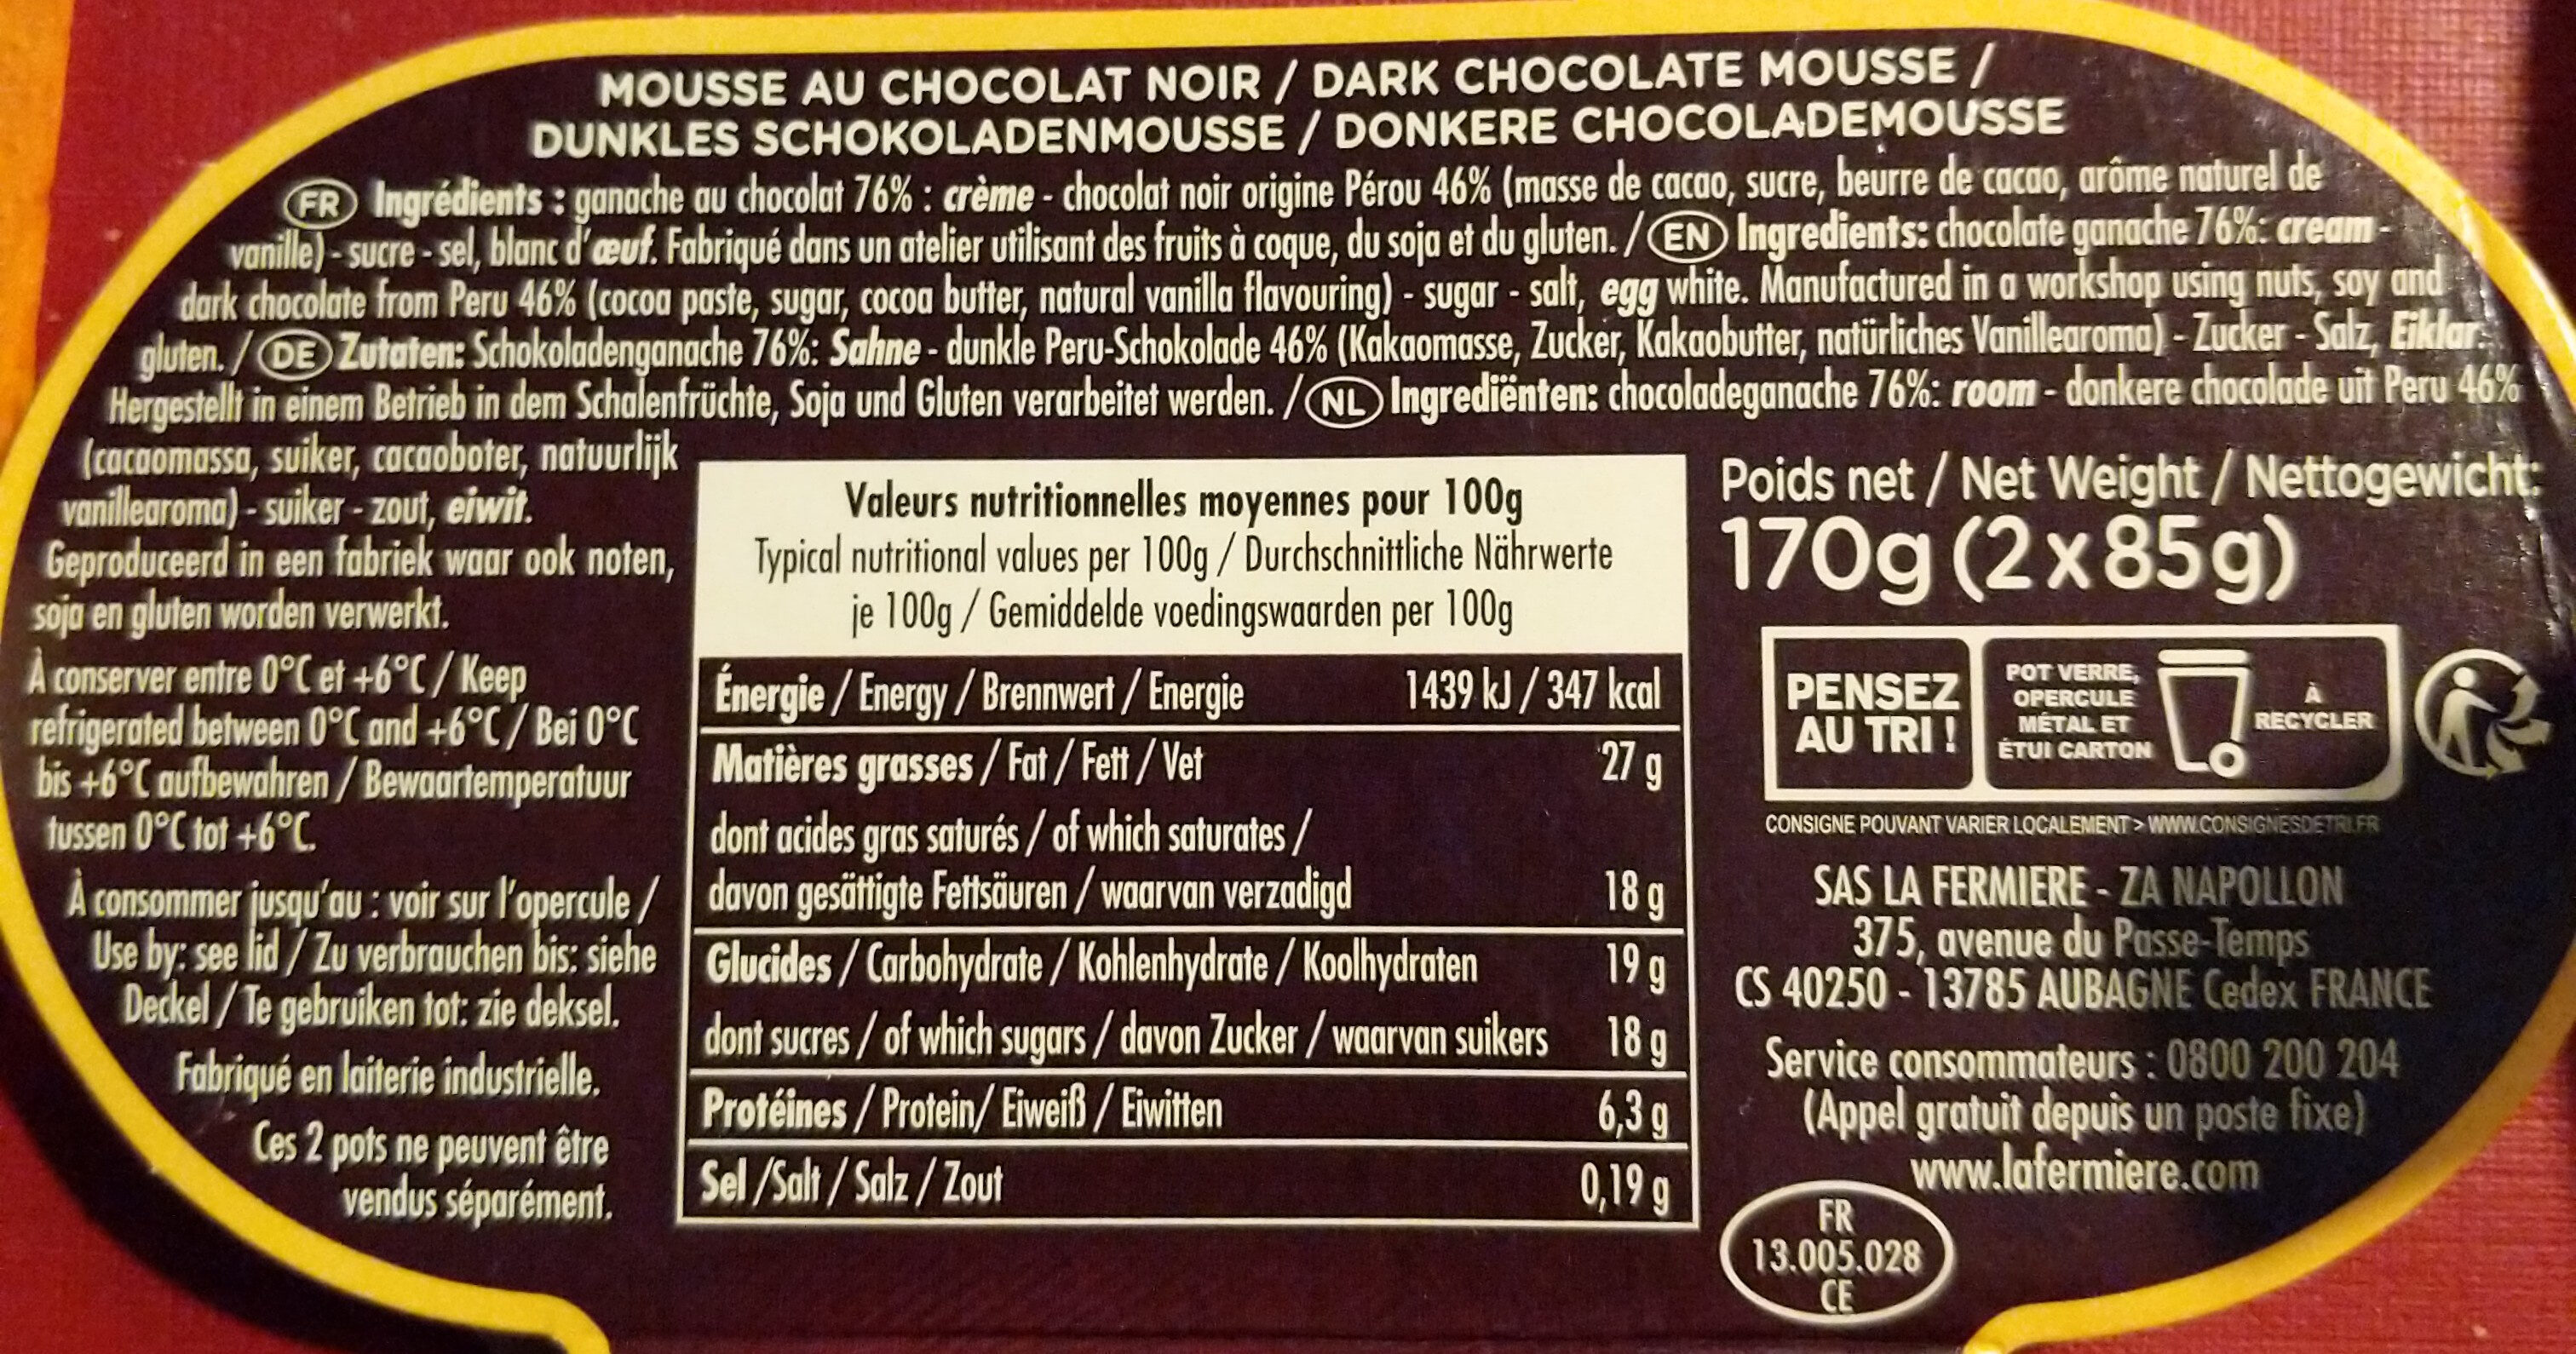 La Mousse au Chocolat Noir Pérou - Ingredients - fr